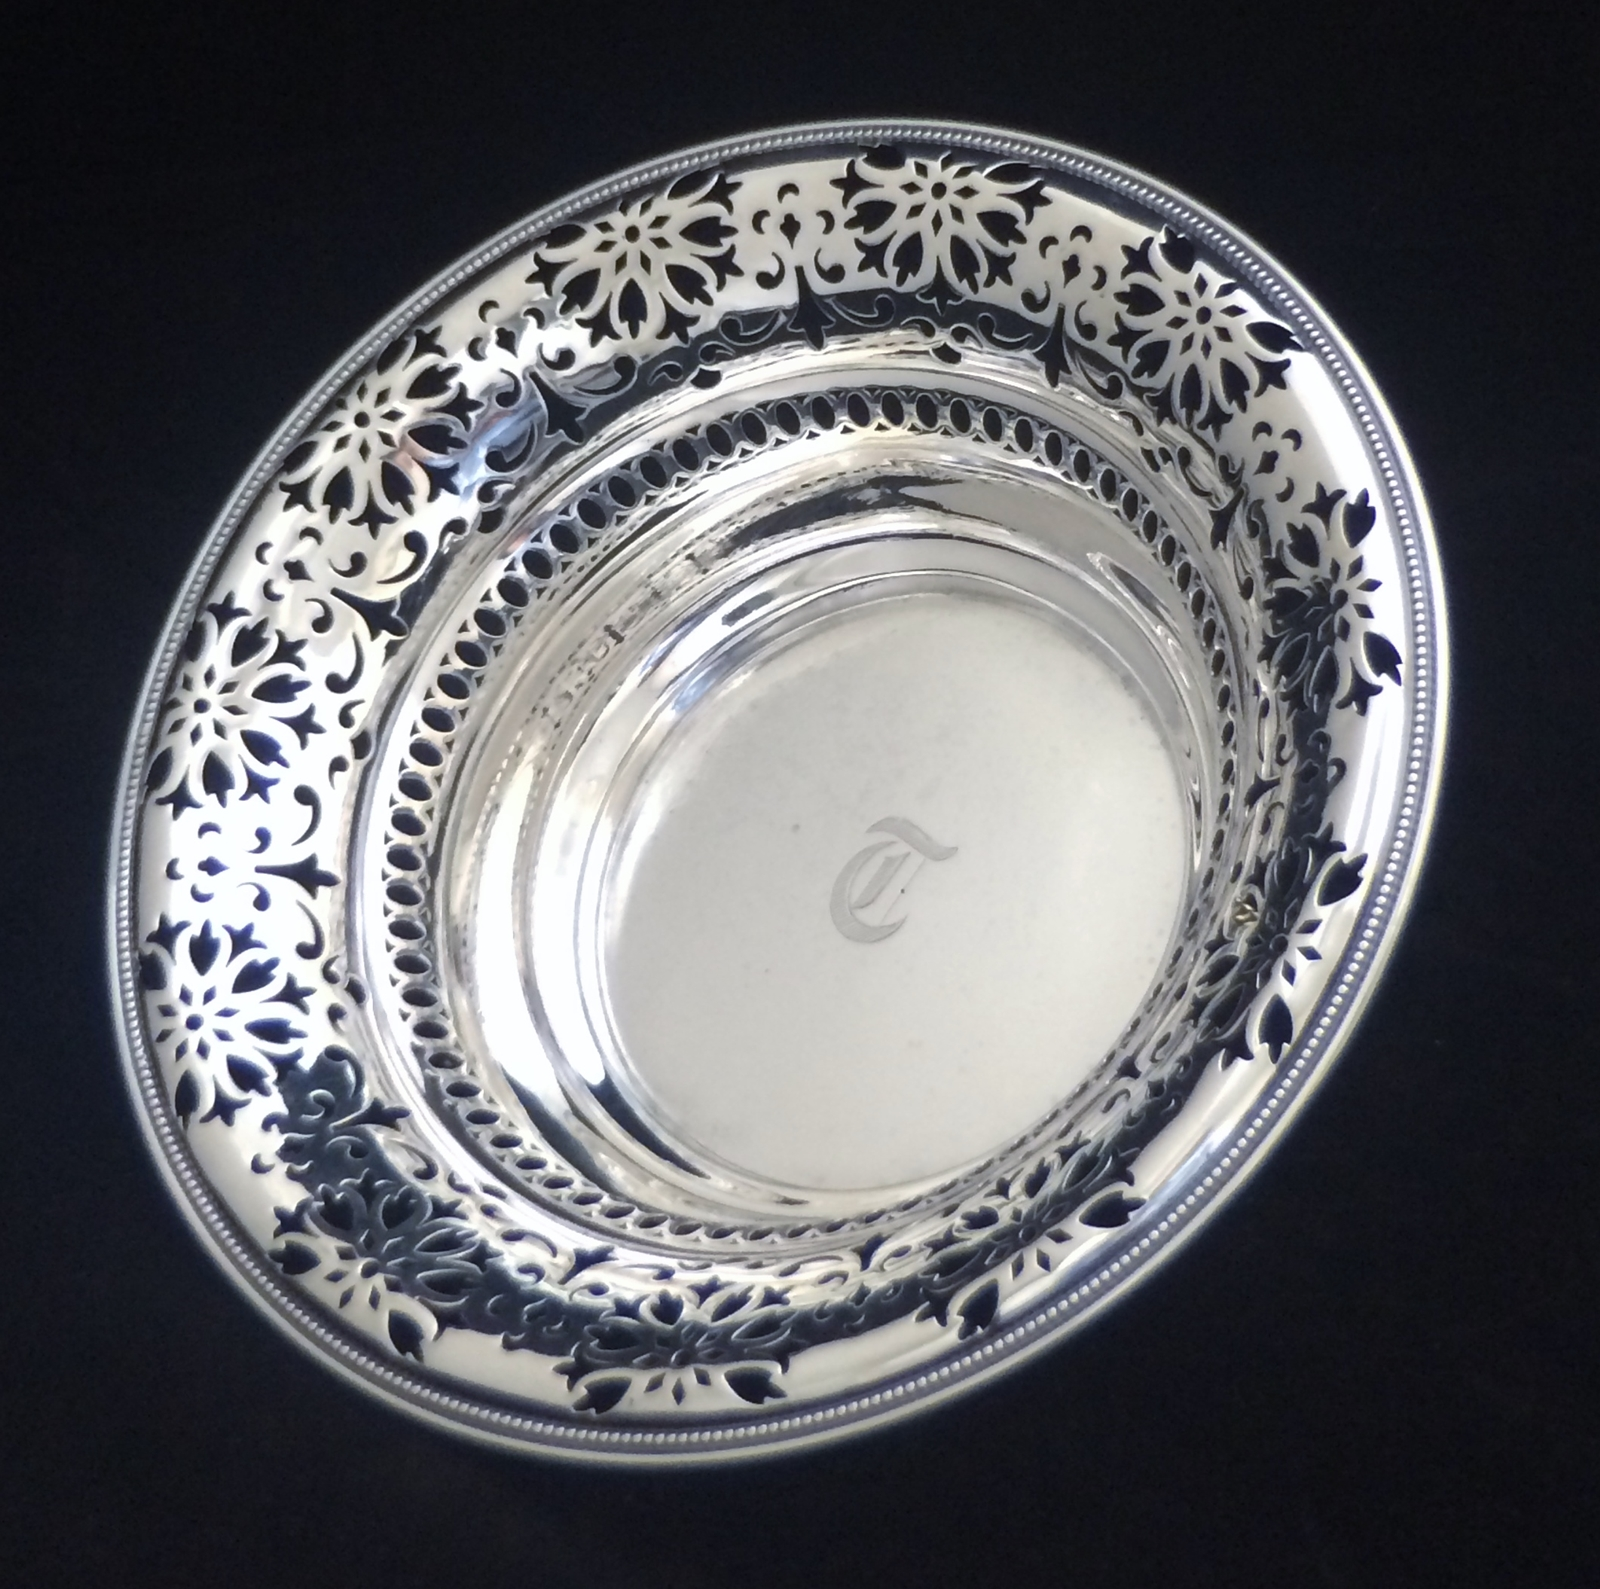 Comfy gorham silver for kitchen and dining sets with gorham silver patterns